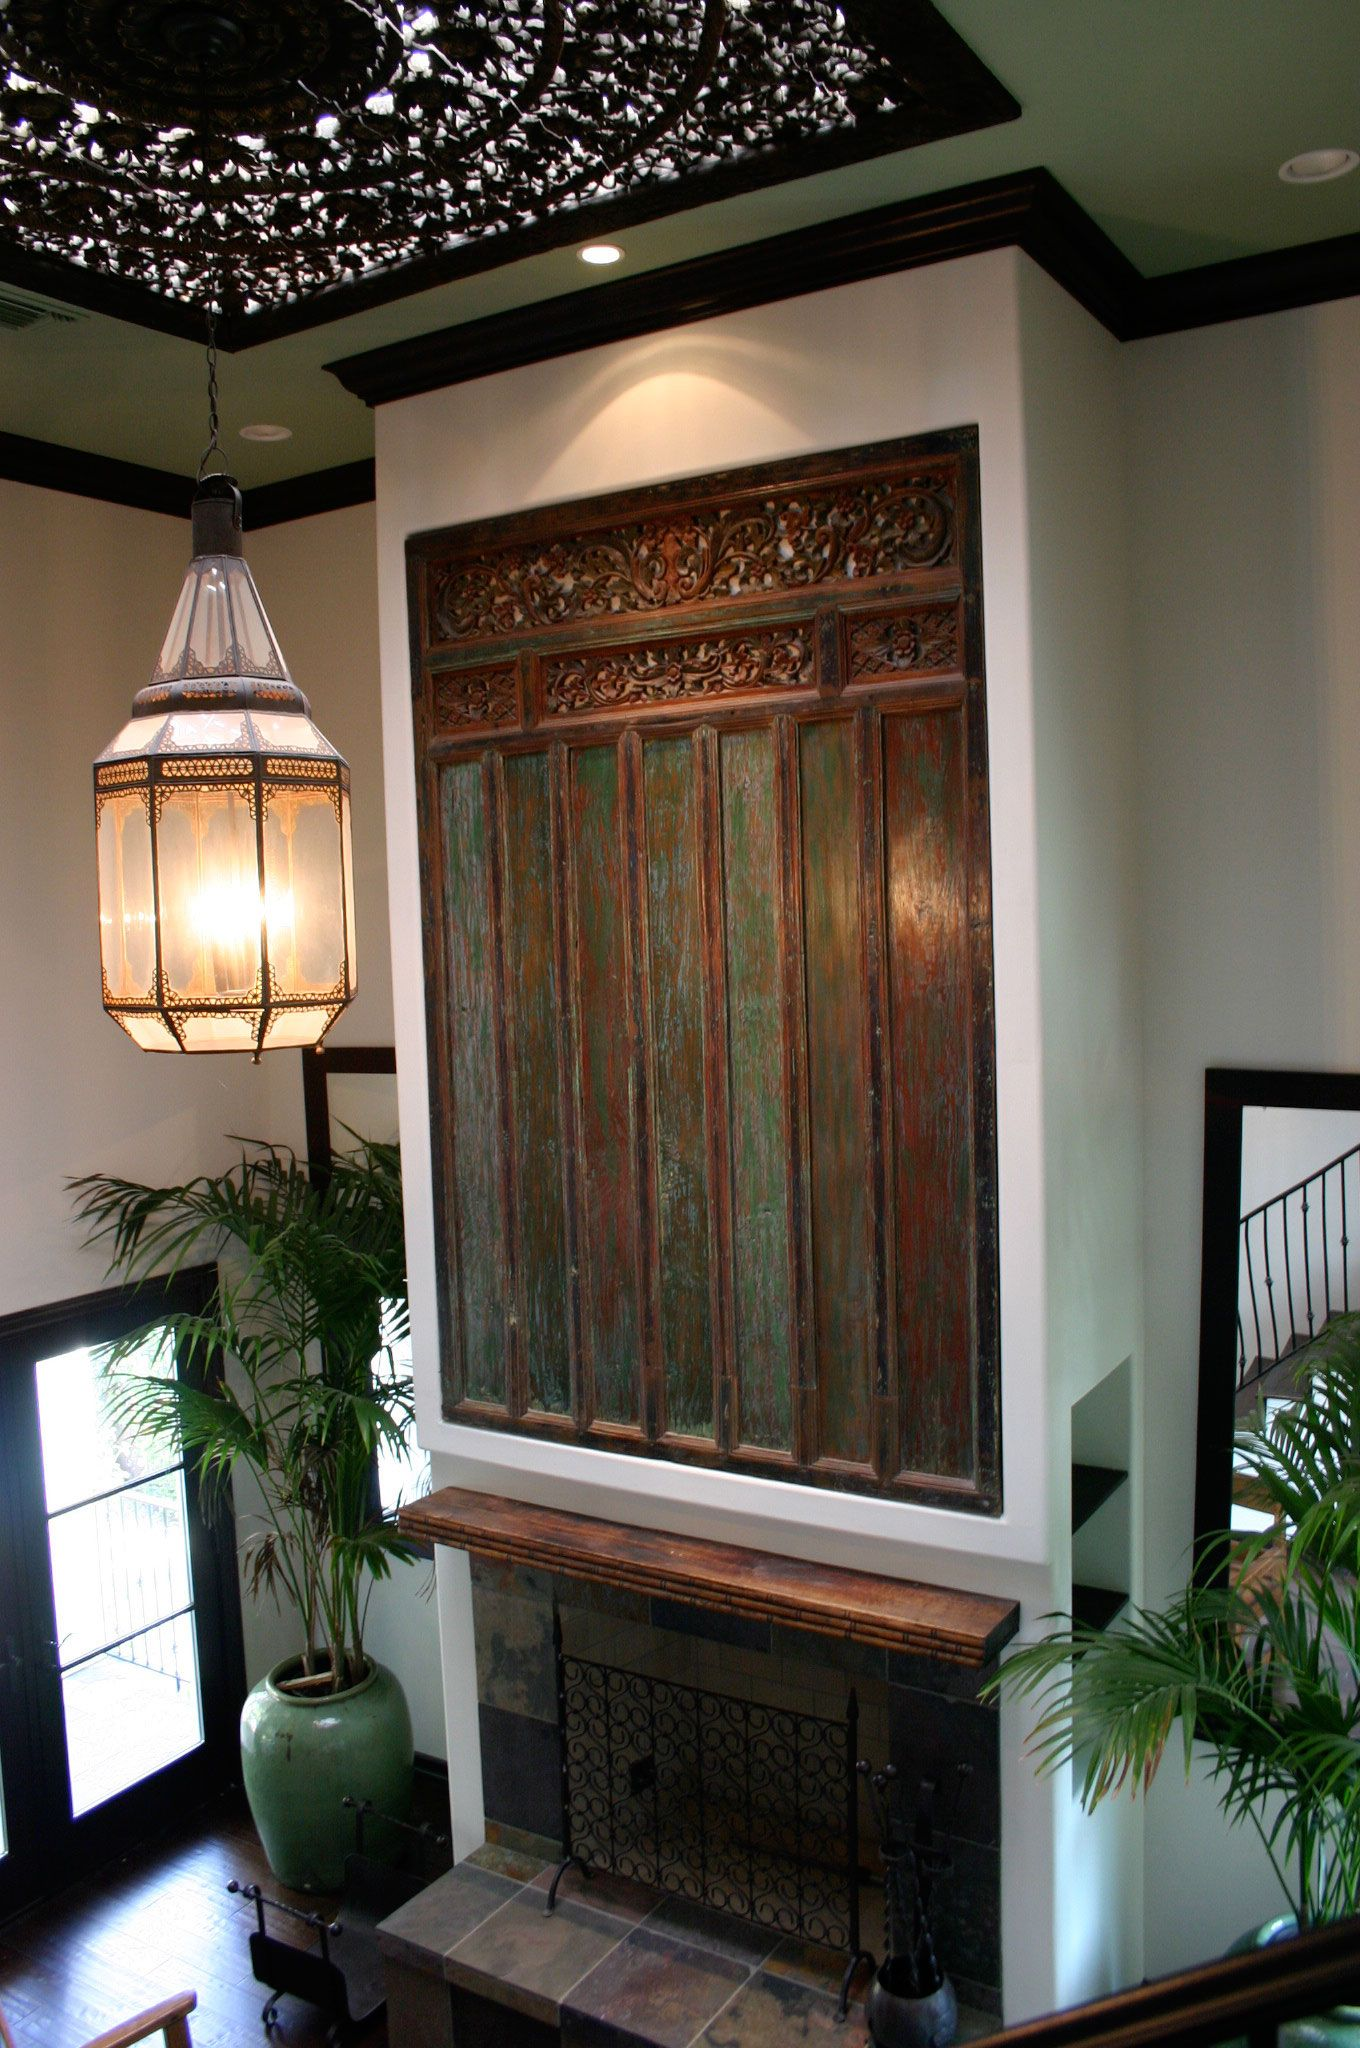 Home interiors antique carved indonesian door panel love the ceiling also best images diy ideas for decor bed rh pinterest